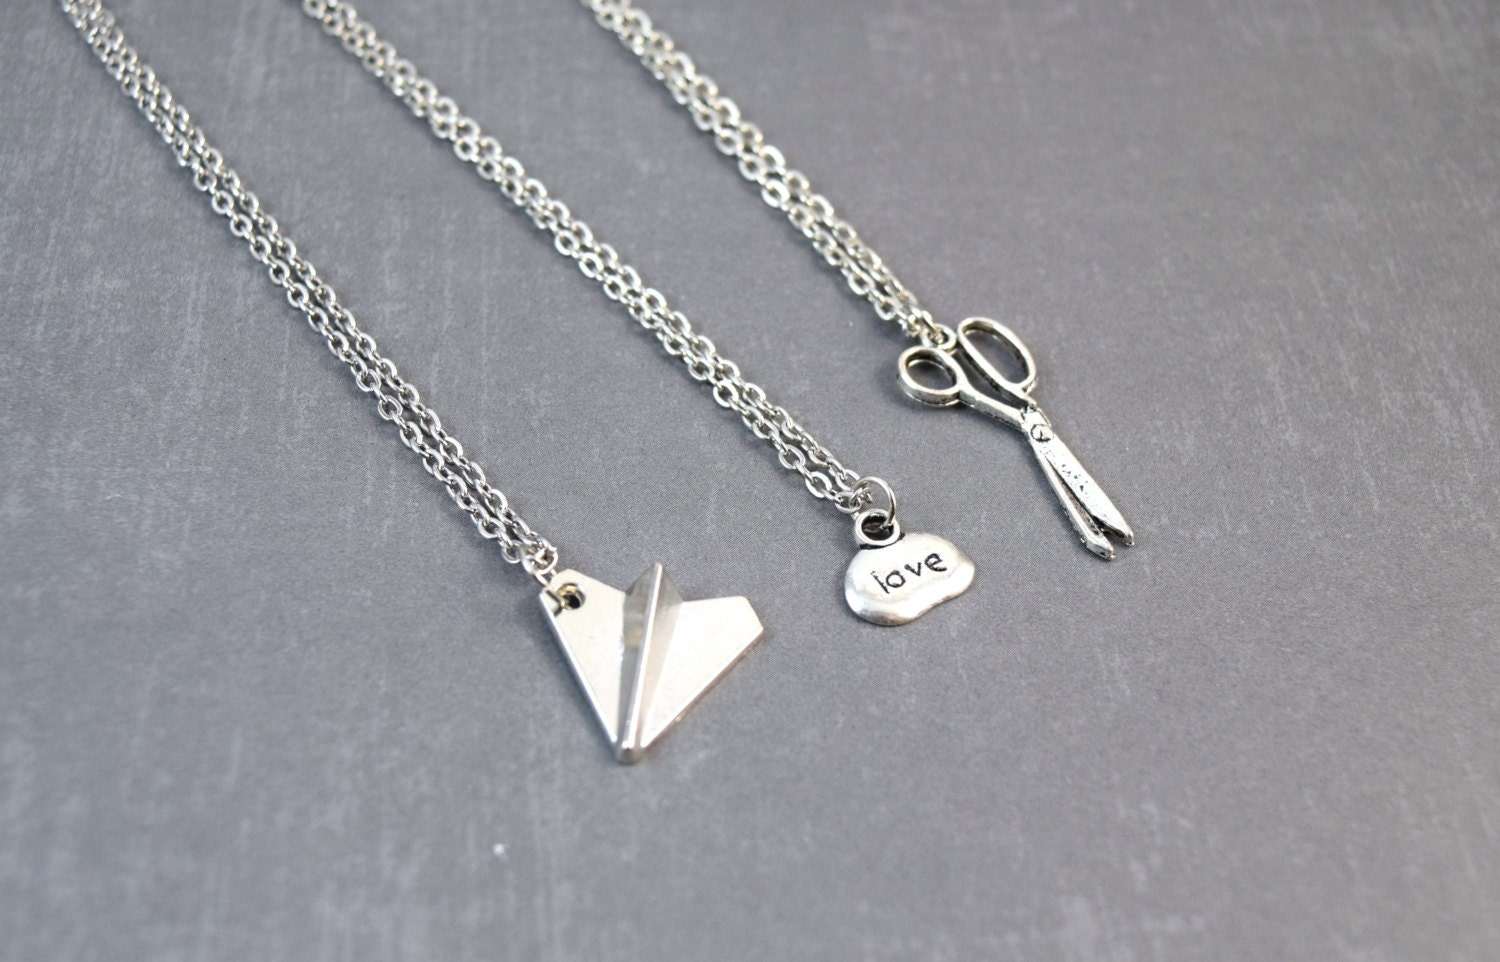 Top 10 Weird and Wonderful Friendship Necklaces I always wanted a friendship necklace, but it was always seen as something only girls share between each other so I never got one. But these days there is a lot more variety and even some that will satisfy any nerdy friendship no matter what sex they are.